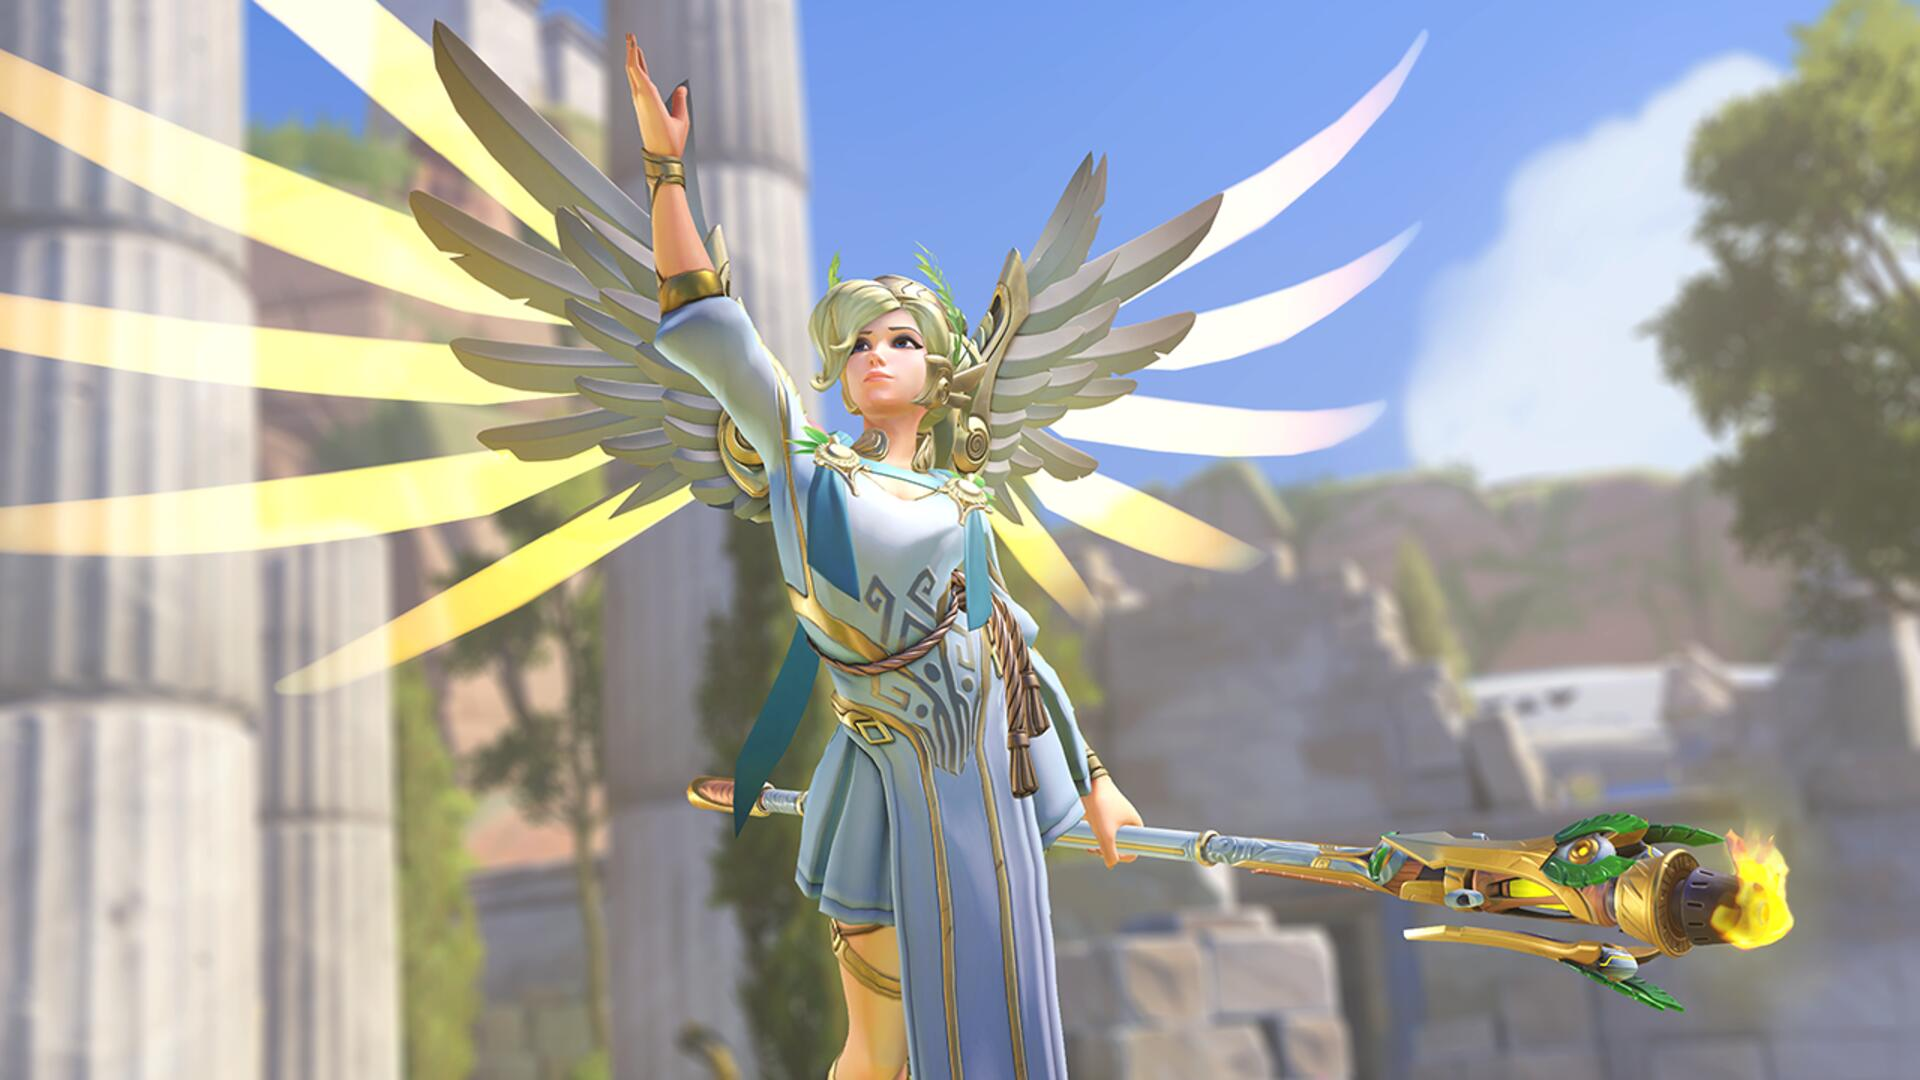 """Overwatch Players Are Scared of Mercy's New Power, While Wondering Why D.Va's Missiles Aren't """"Anime"""" Enough"""